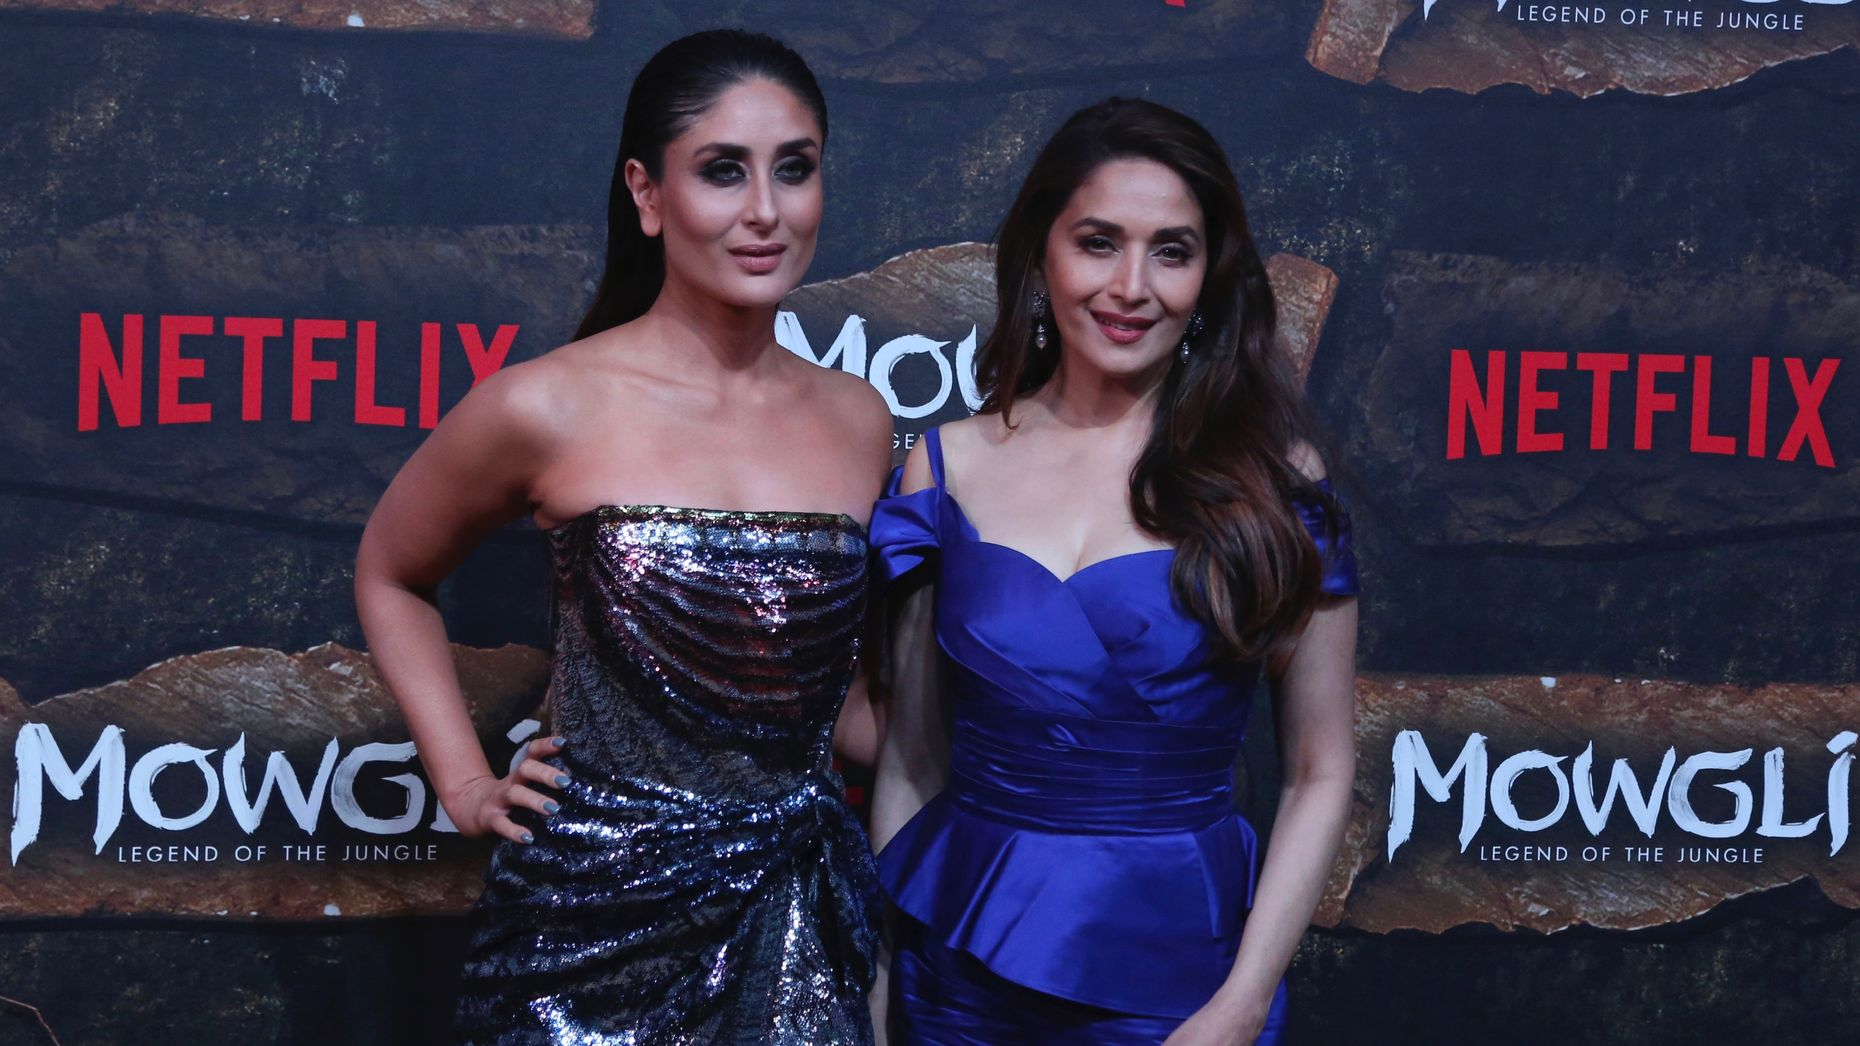 Bollywood actors Kareena Kapoor and Madhuri Dixit pose during a red carpet of Netflix's Mowgli world premier in Mumbai, India last Sunday. Photo by AP